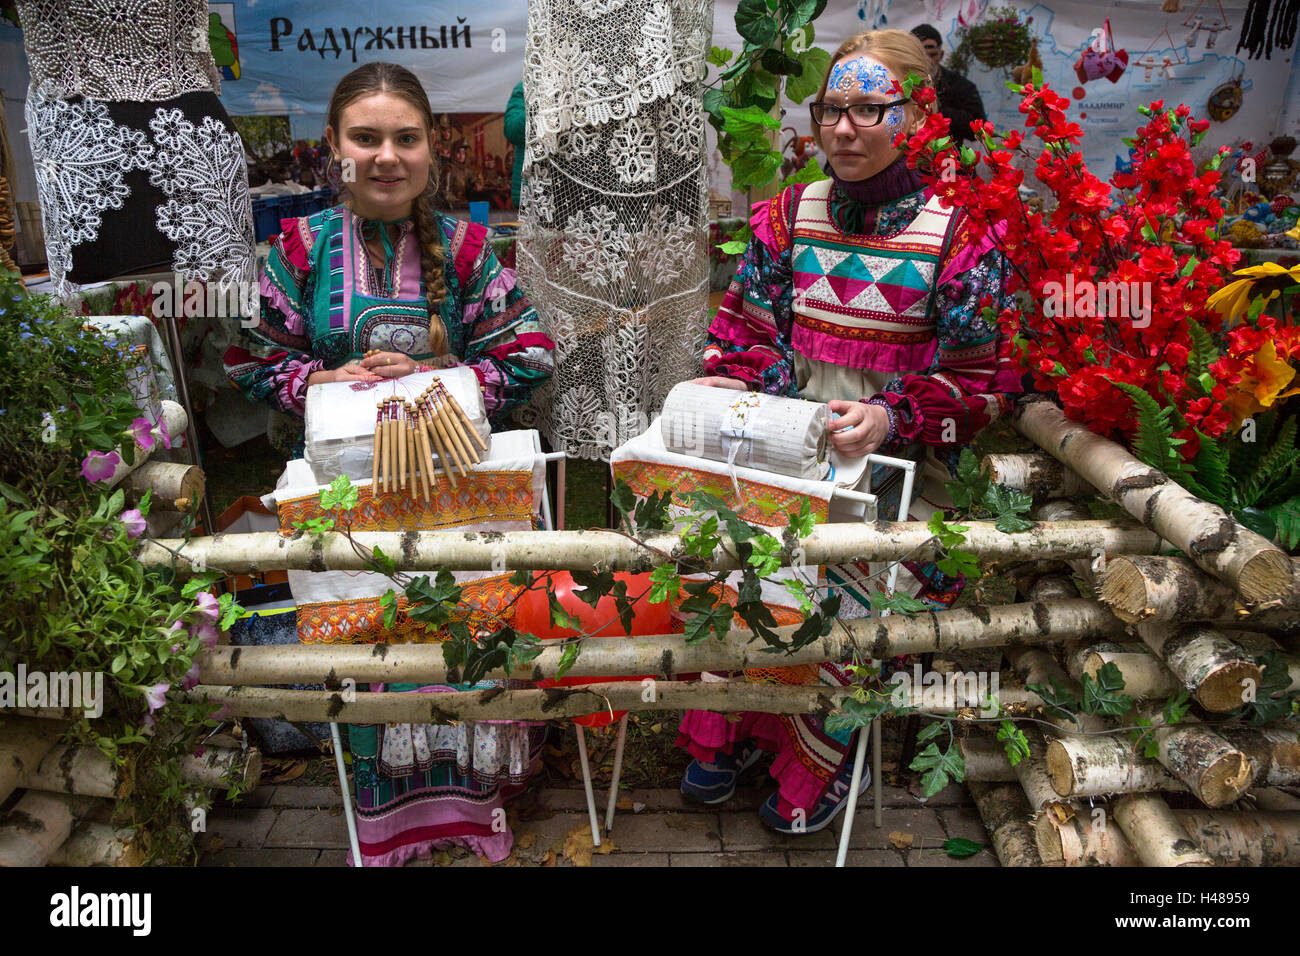 Skilled girls waving the traditional bobbin lace in Vladimir town, Russia - Stock Image